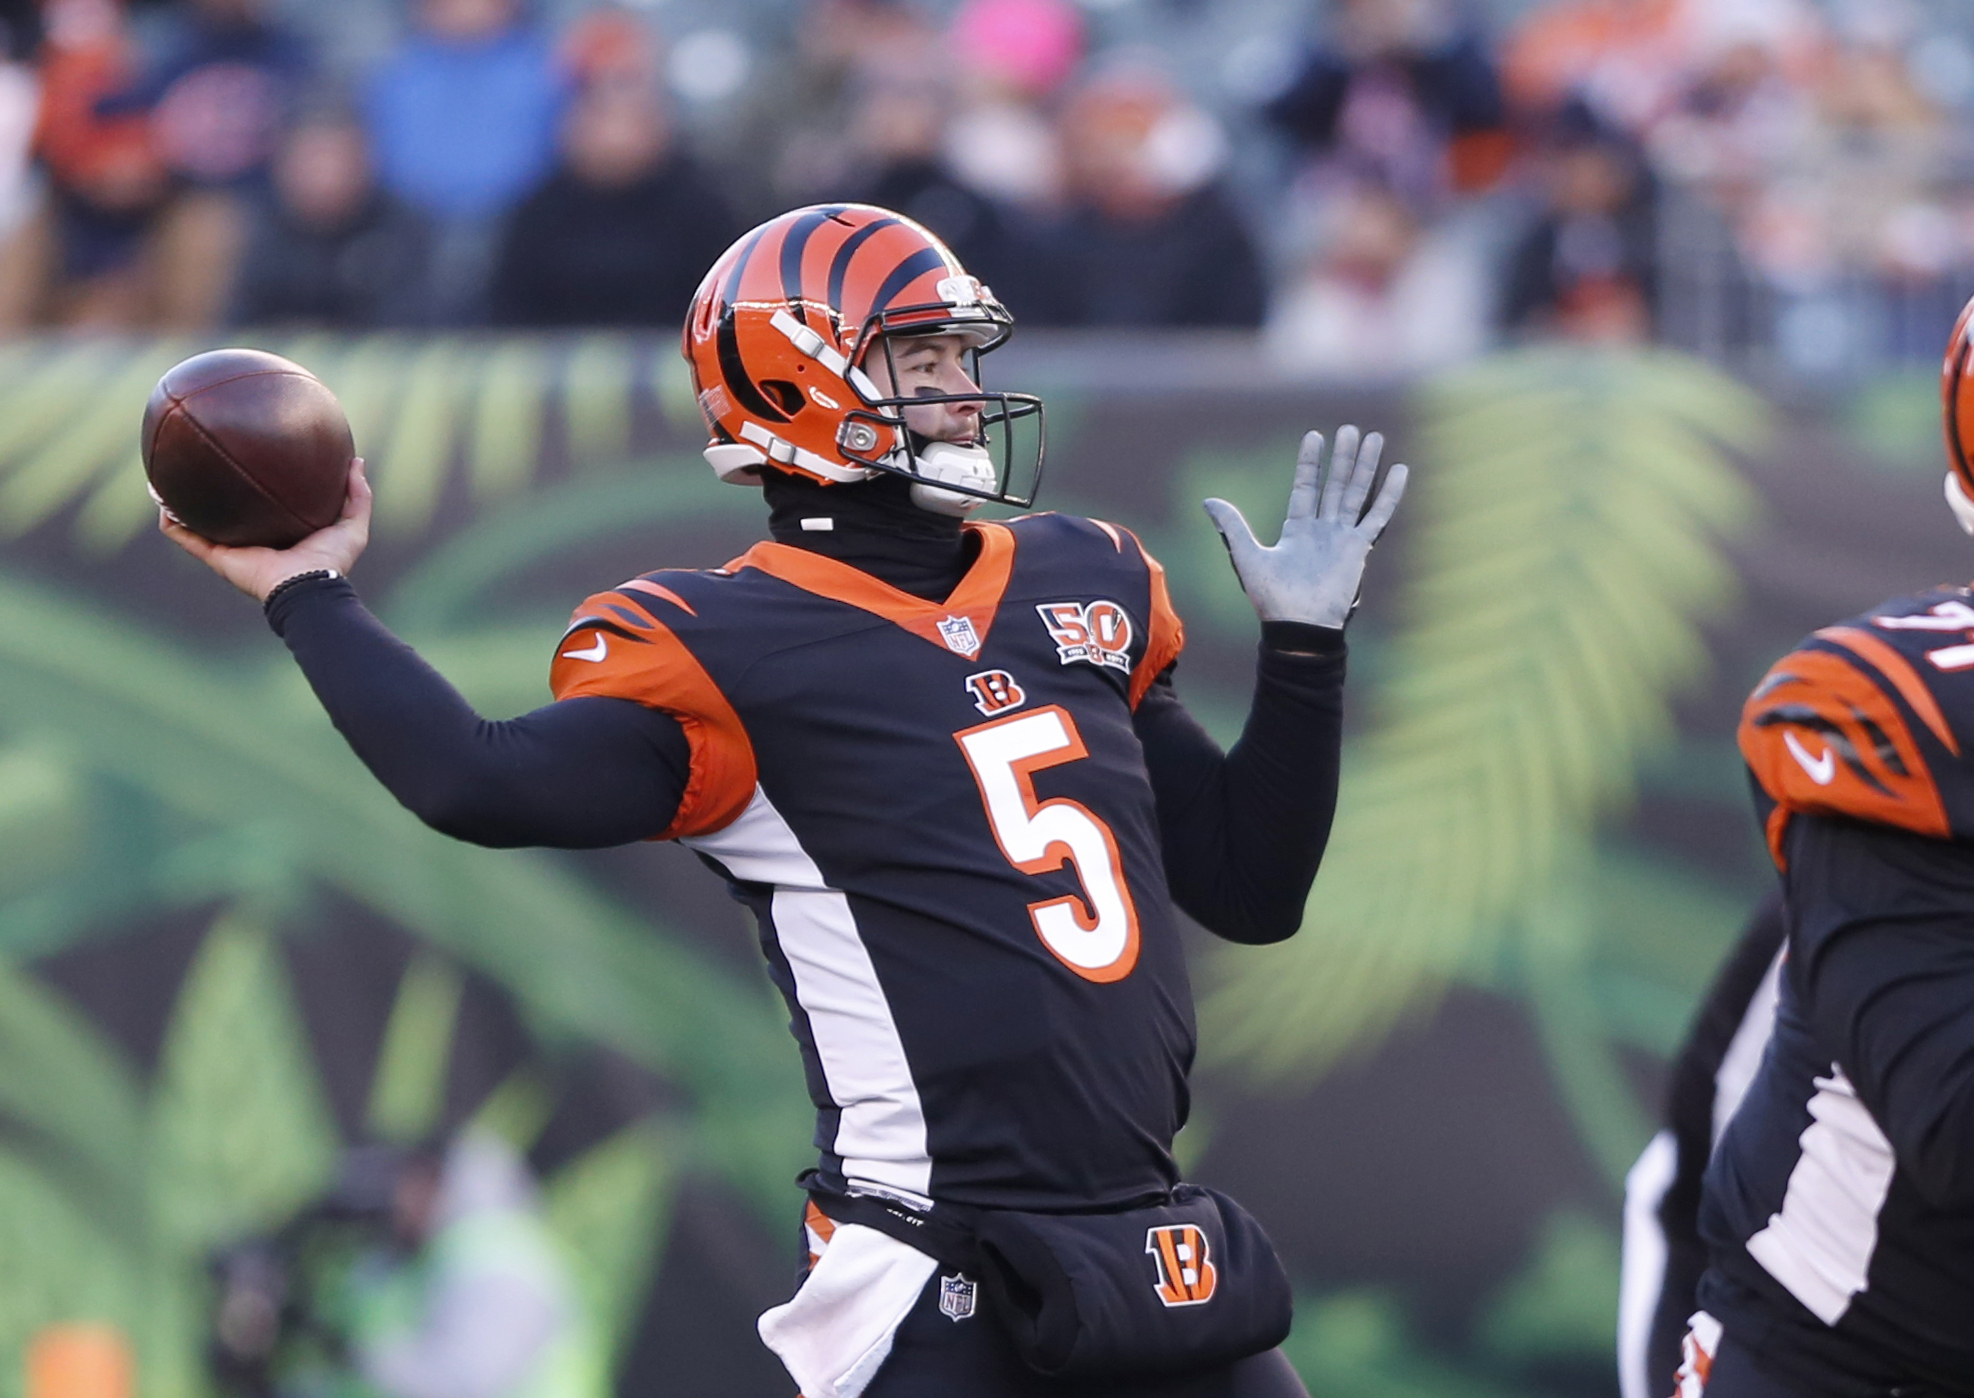 AJ McCarron Q and A with @JoeGoodberry of The Athletic